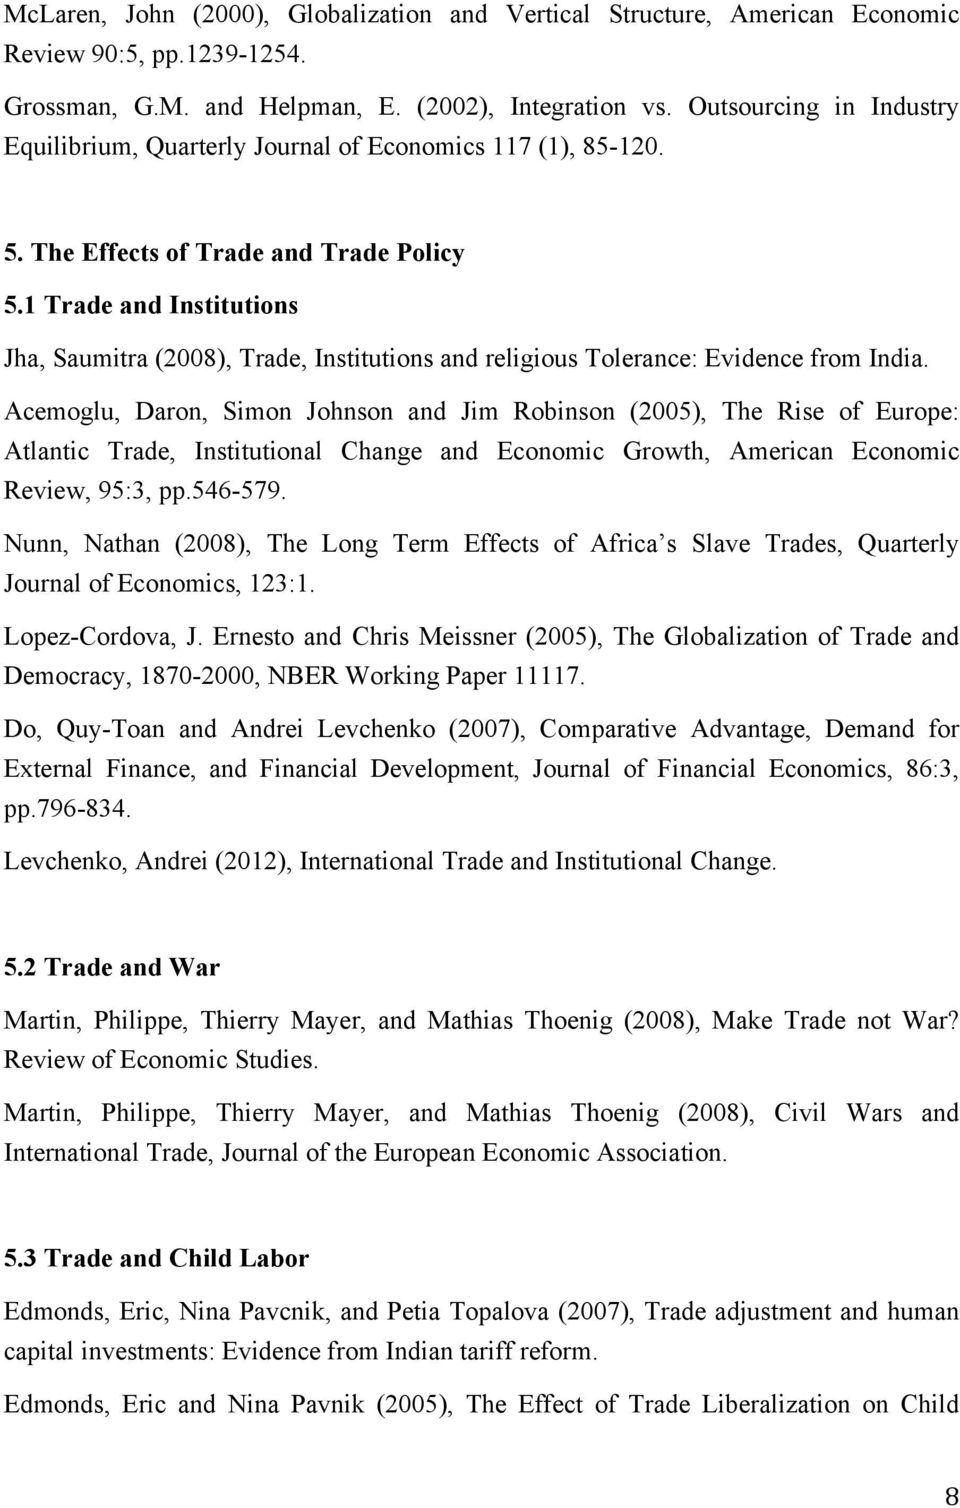 1 Trade and Institutions Jha, Saumitra (2008), Trade, Institutions and religious Tolerance: Evidence from India.